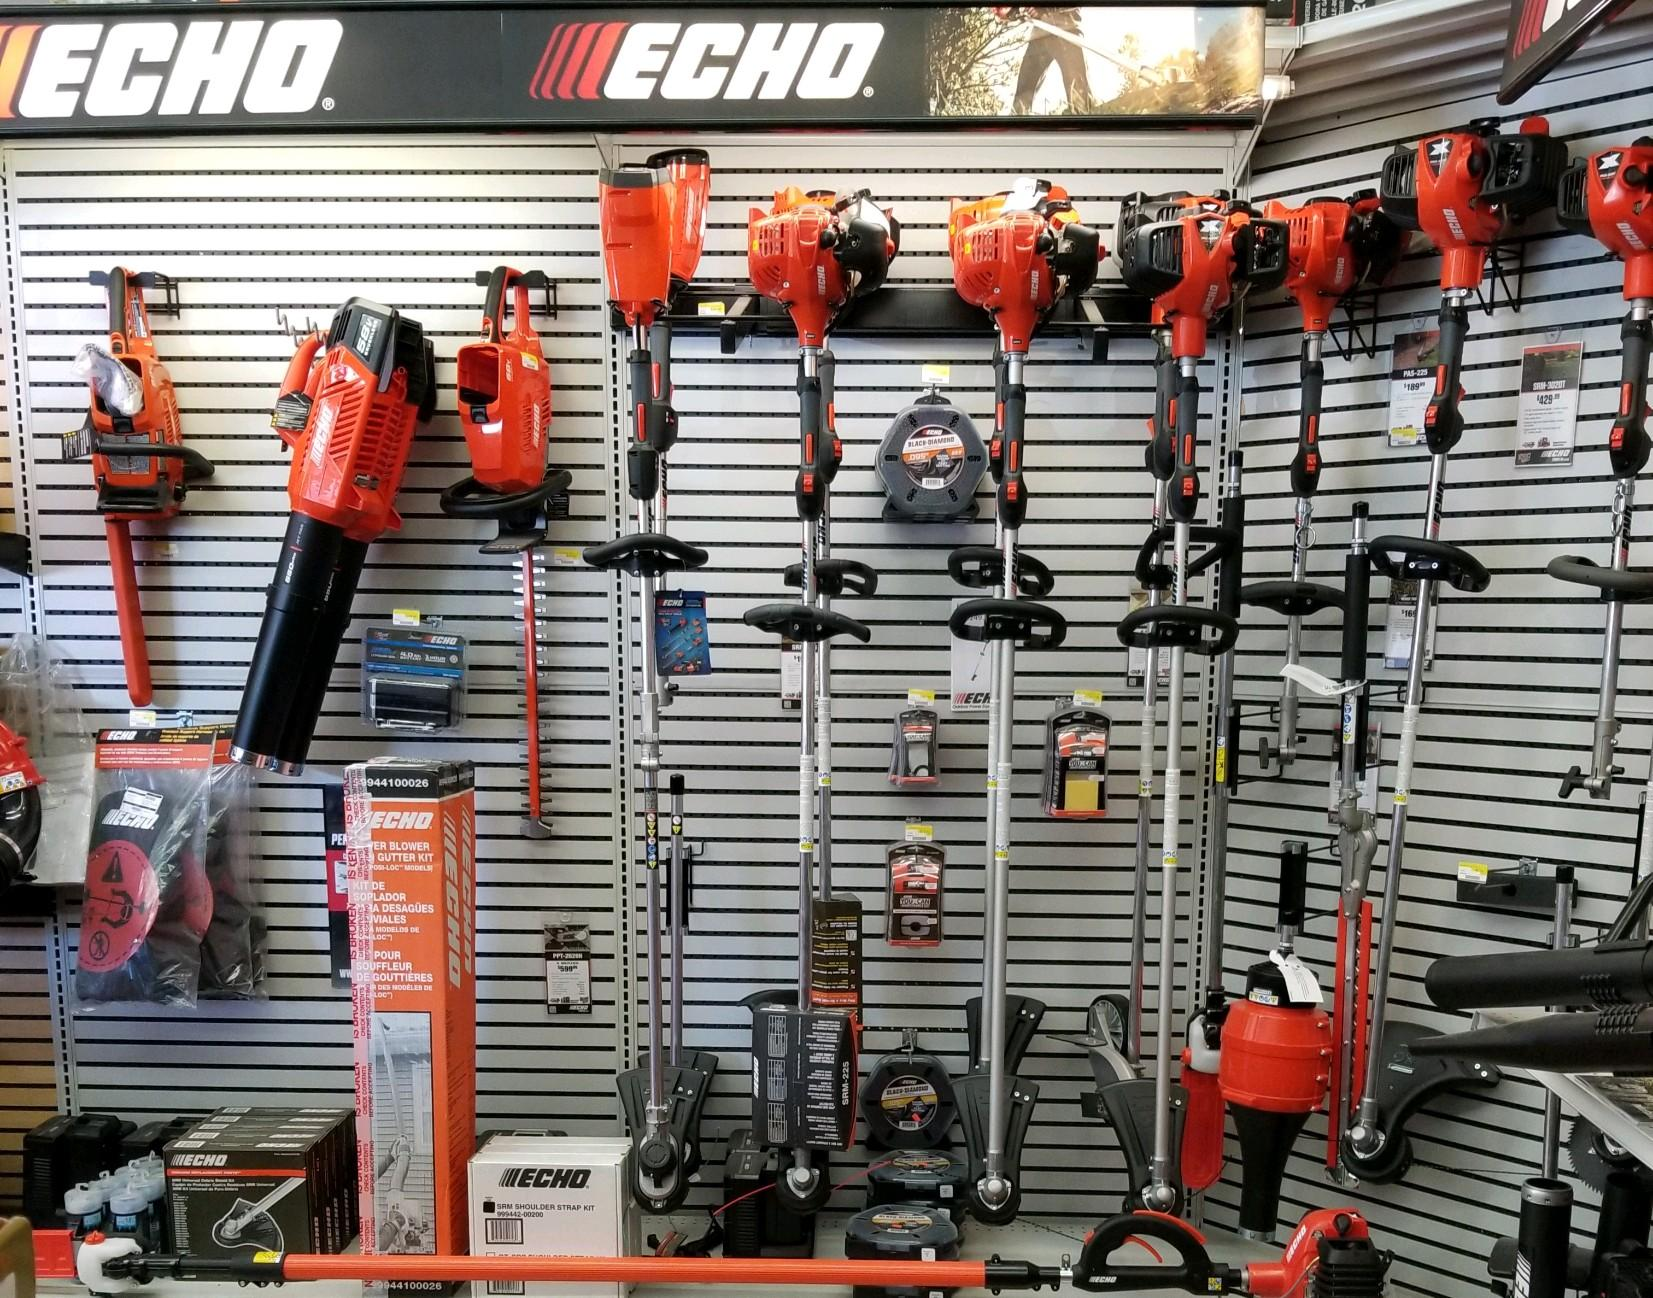 Echo - Weedeaters, Blowers, and Trimmers